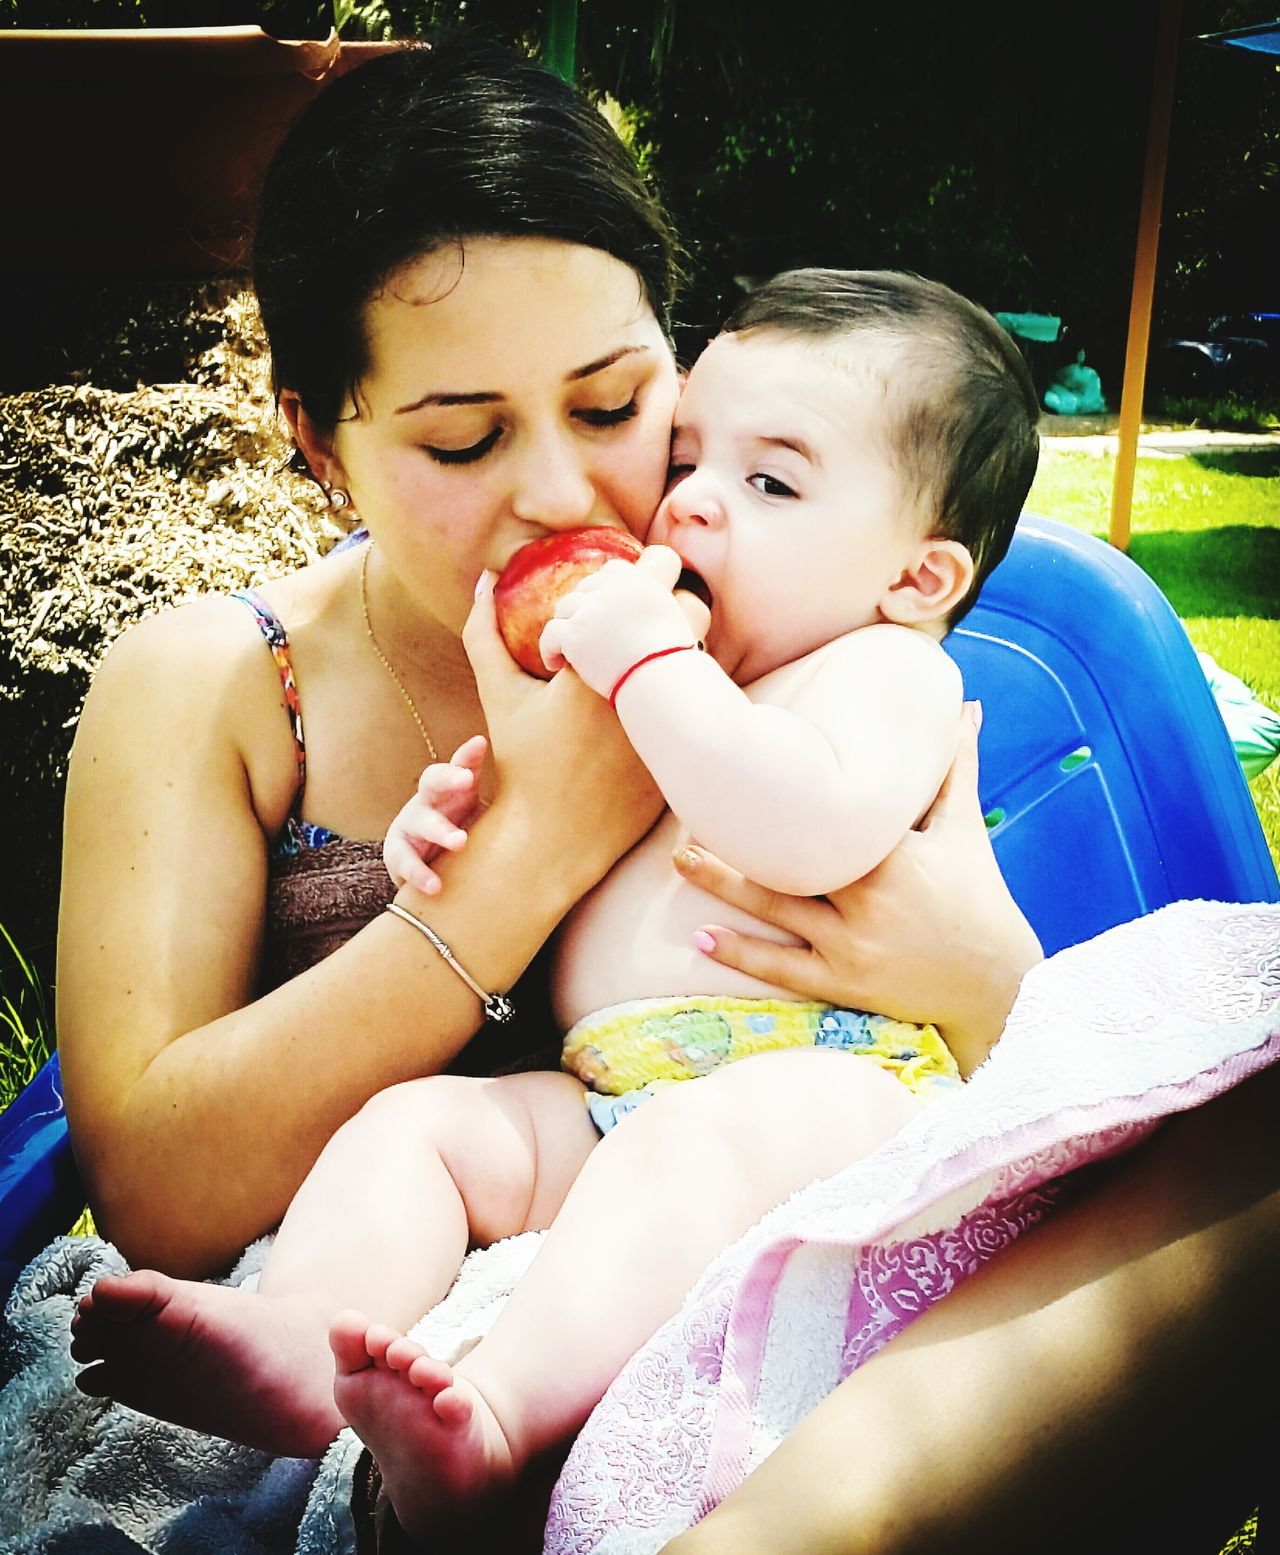 Togetherness Childhood Vacations Family Affectionate People And Places Close-up Cute Baby Toddler  Eating!  Eating Fruits